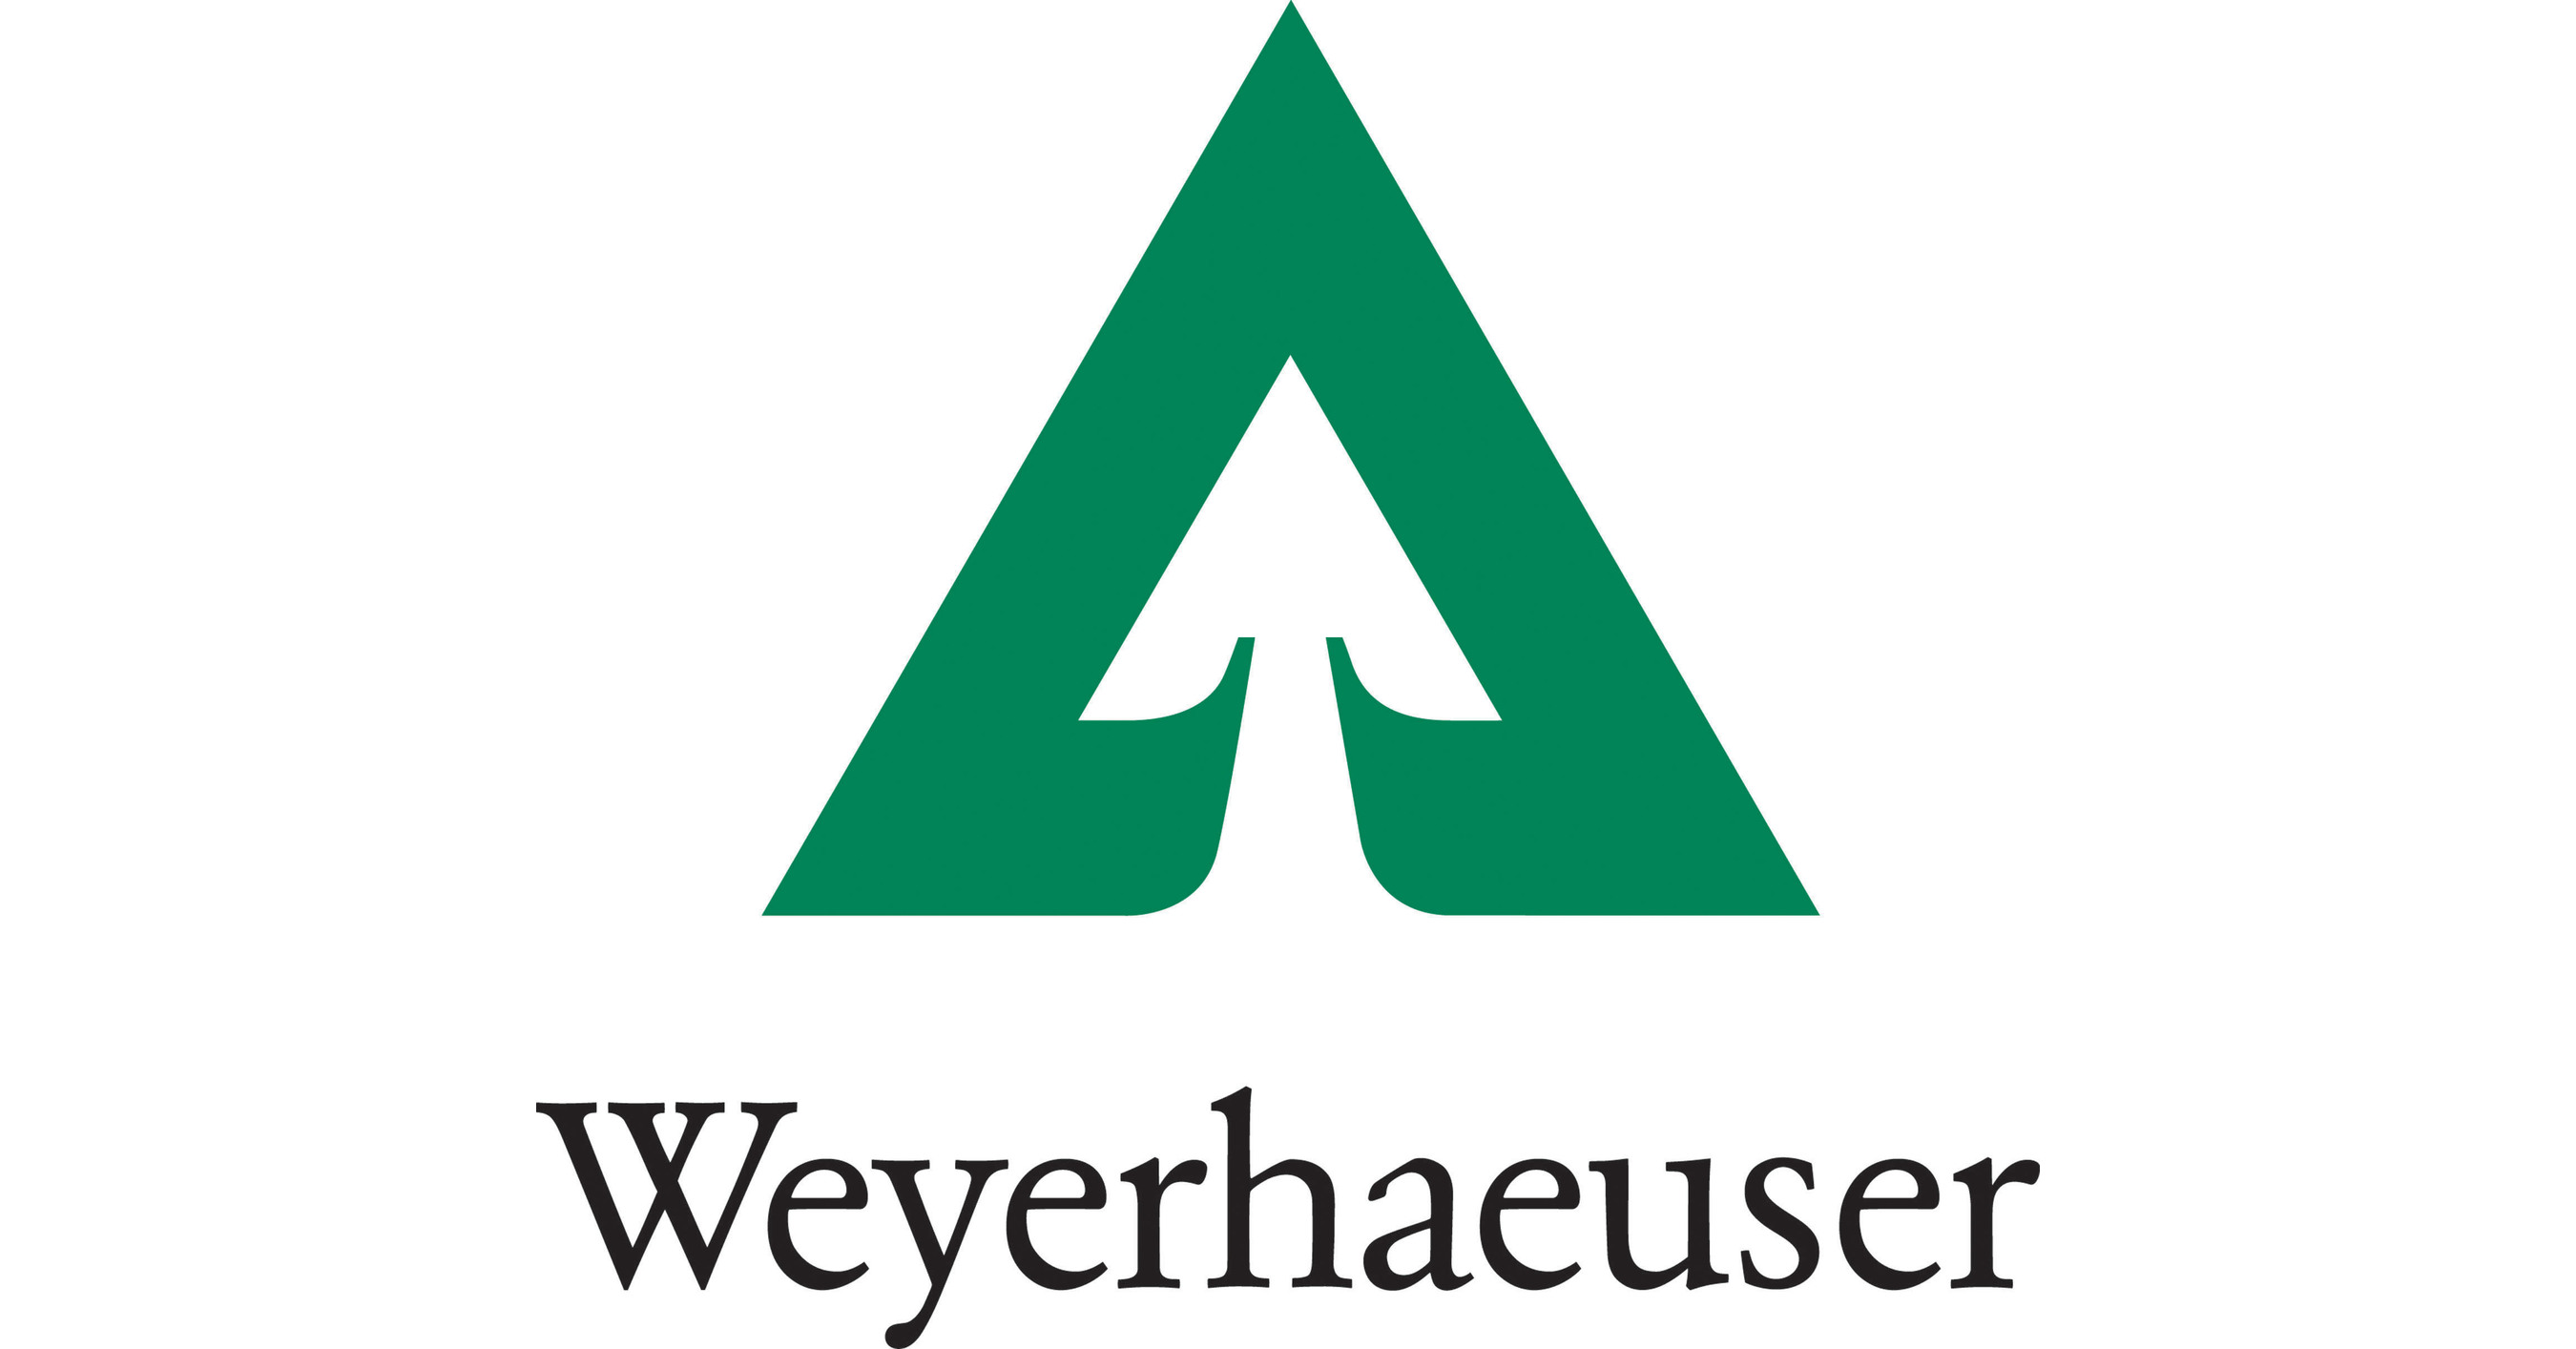 weyerhaeuser paper Learn about weyerhaeuser's history in everett weyerhaeuser pulp mill everett, asbestos jobsite the pulp and paper industry itself may have exposed workers.